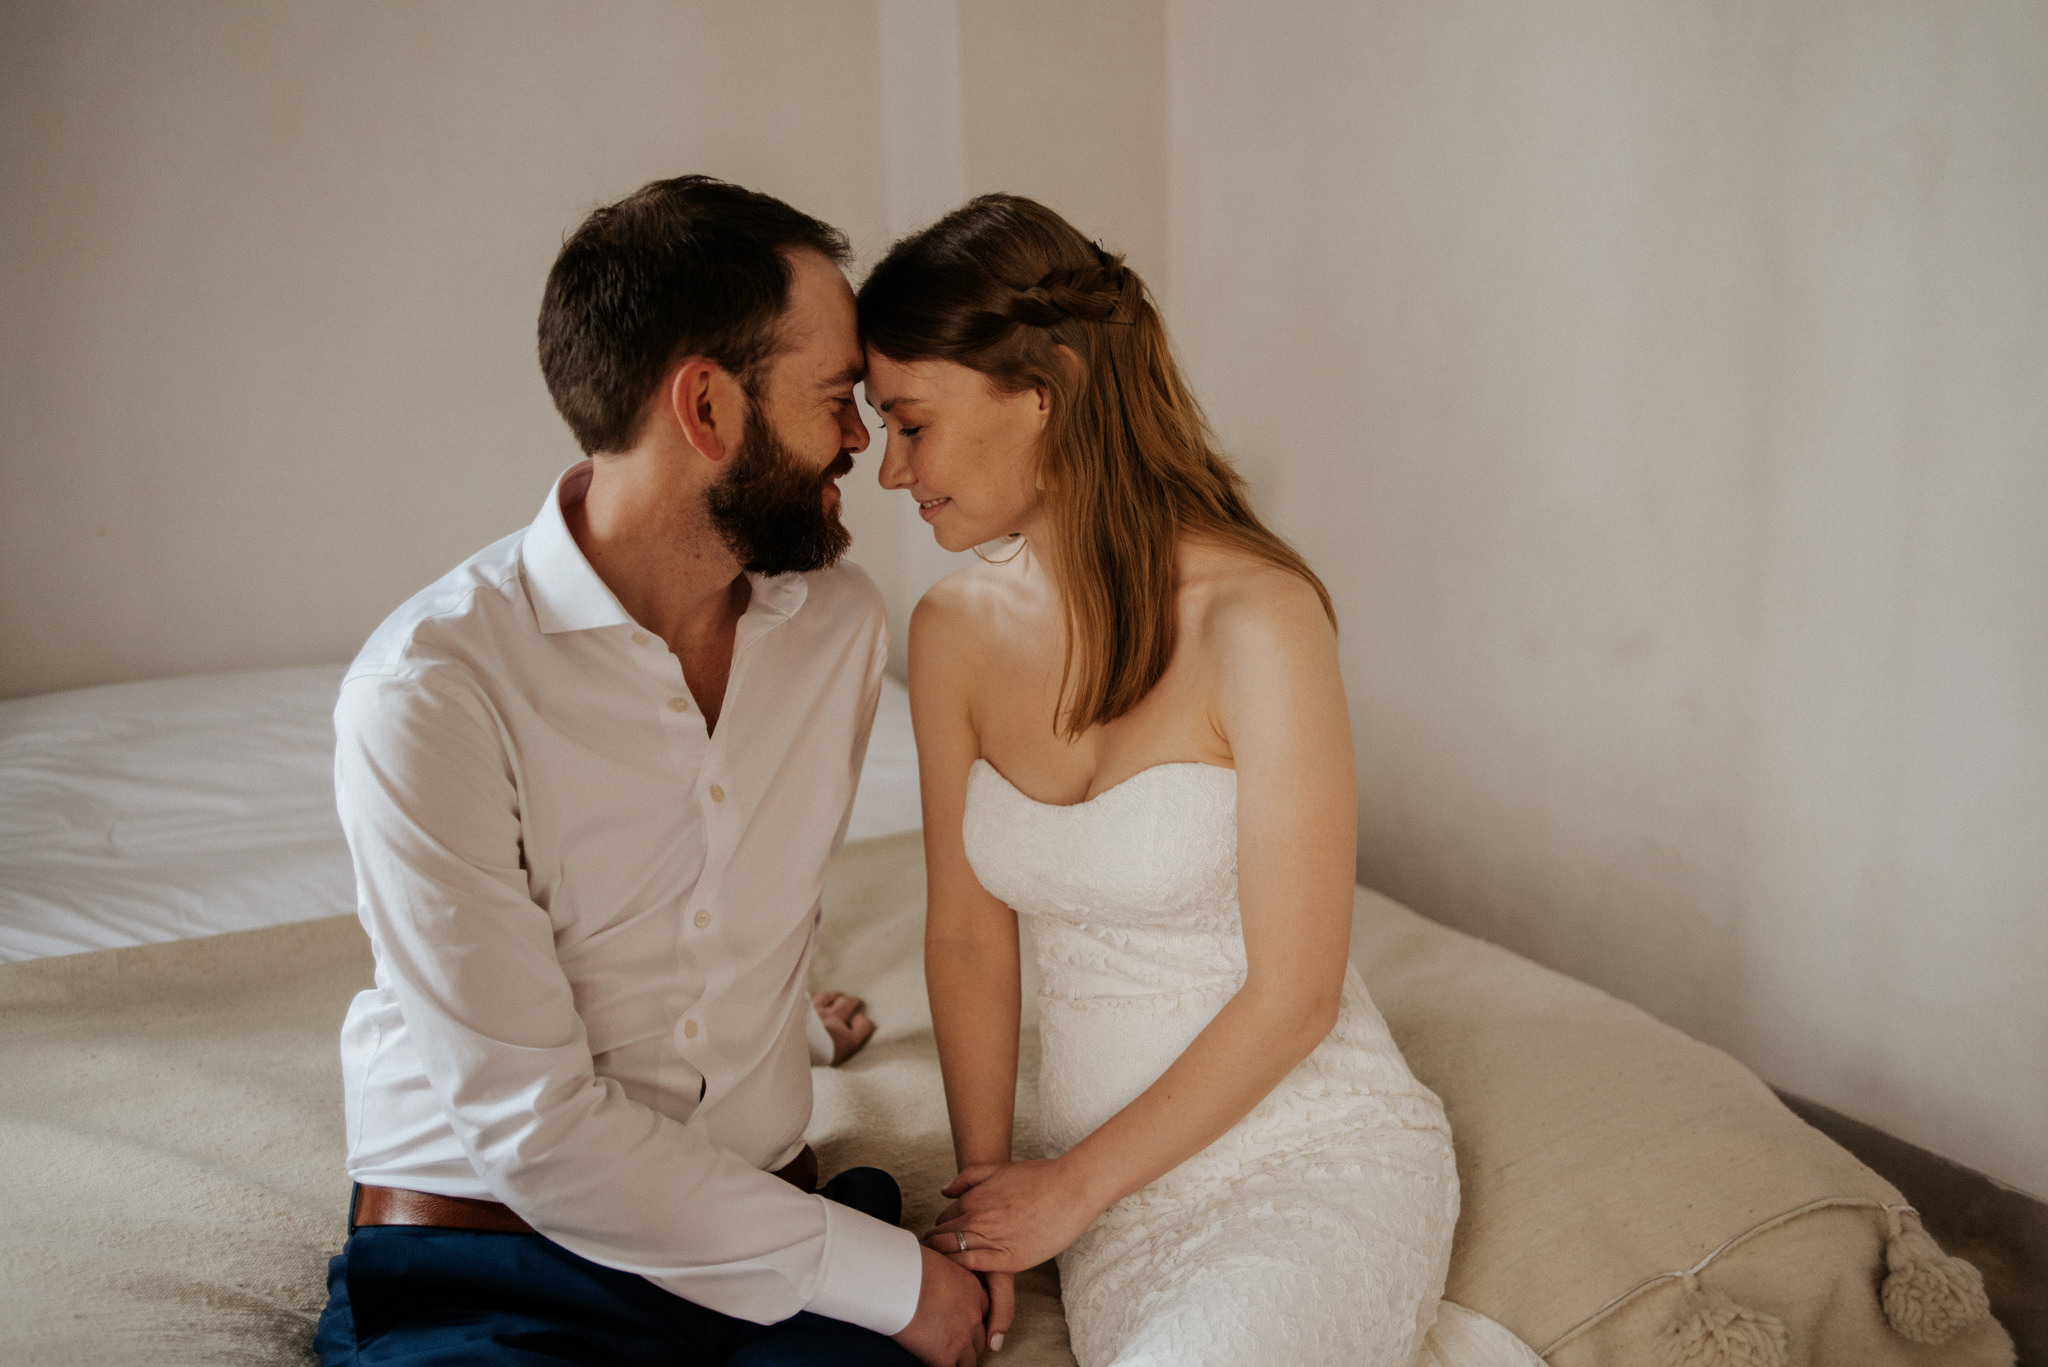 Bride and groom having a moment together sitting on bed before their elopement